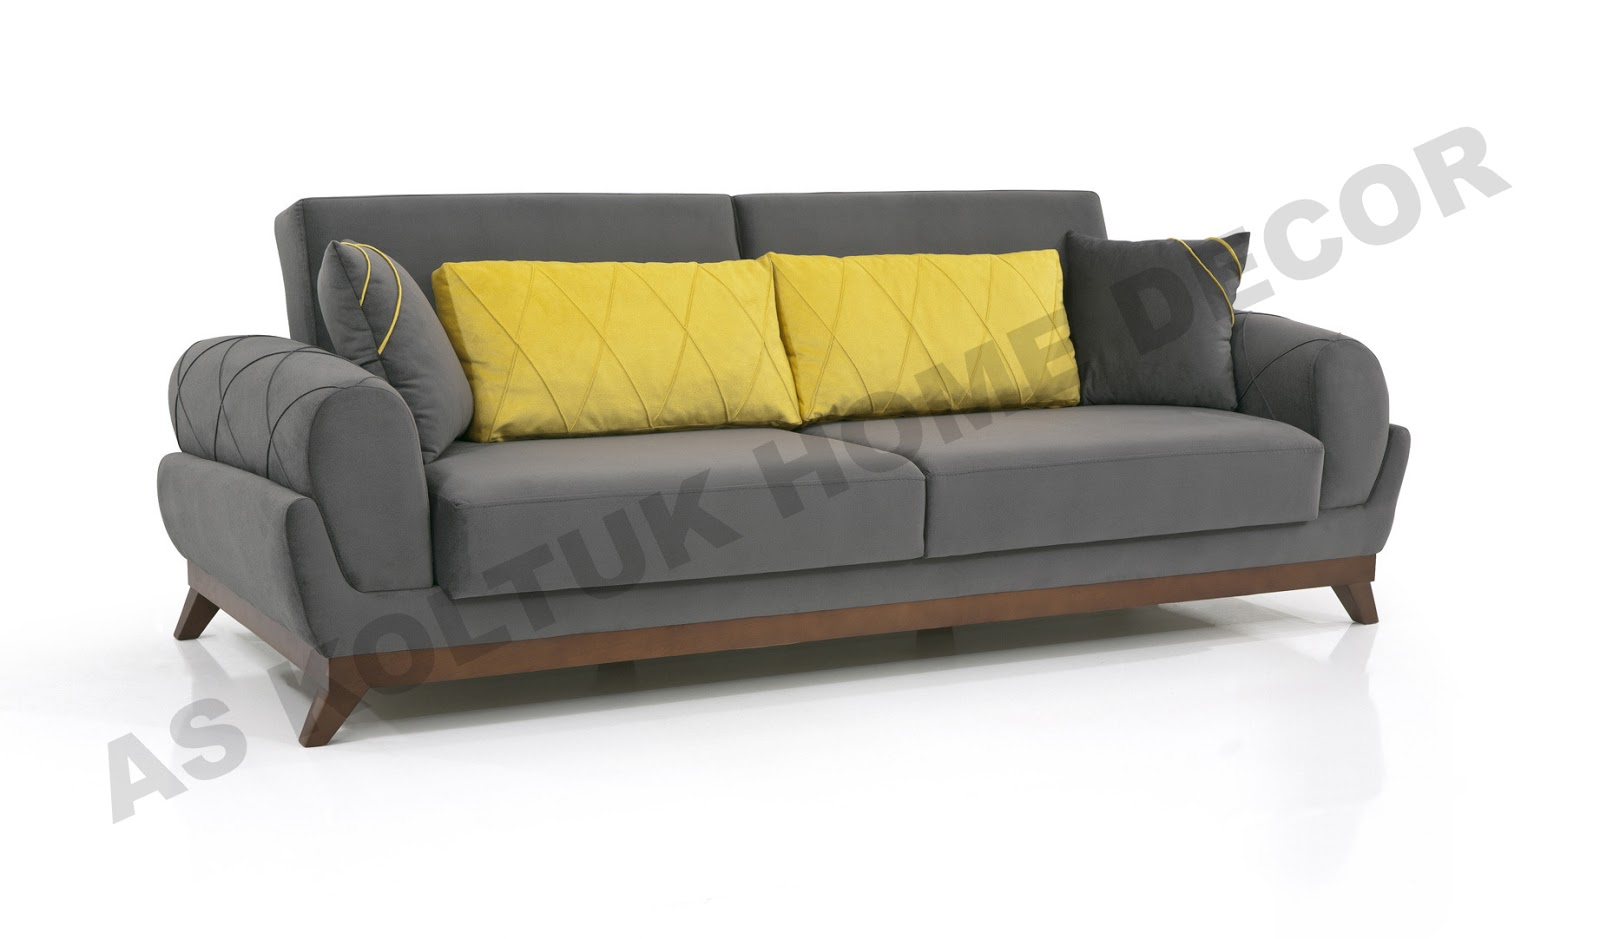 firstclass modern armchair. For sale brand new grey and yellow mustard sofa set with modern design  brown wood legs made in Turkey high quality materials AS Koltuk Home Decor Sale Grey Yellow Mustard Modern Sofa Set